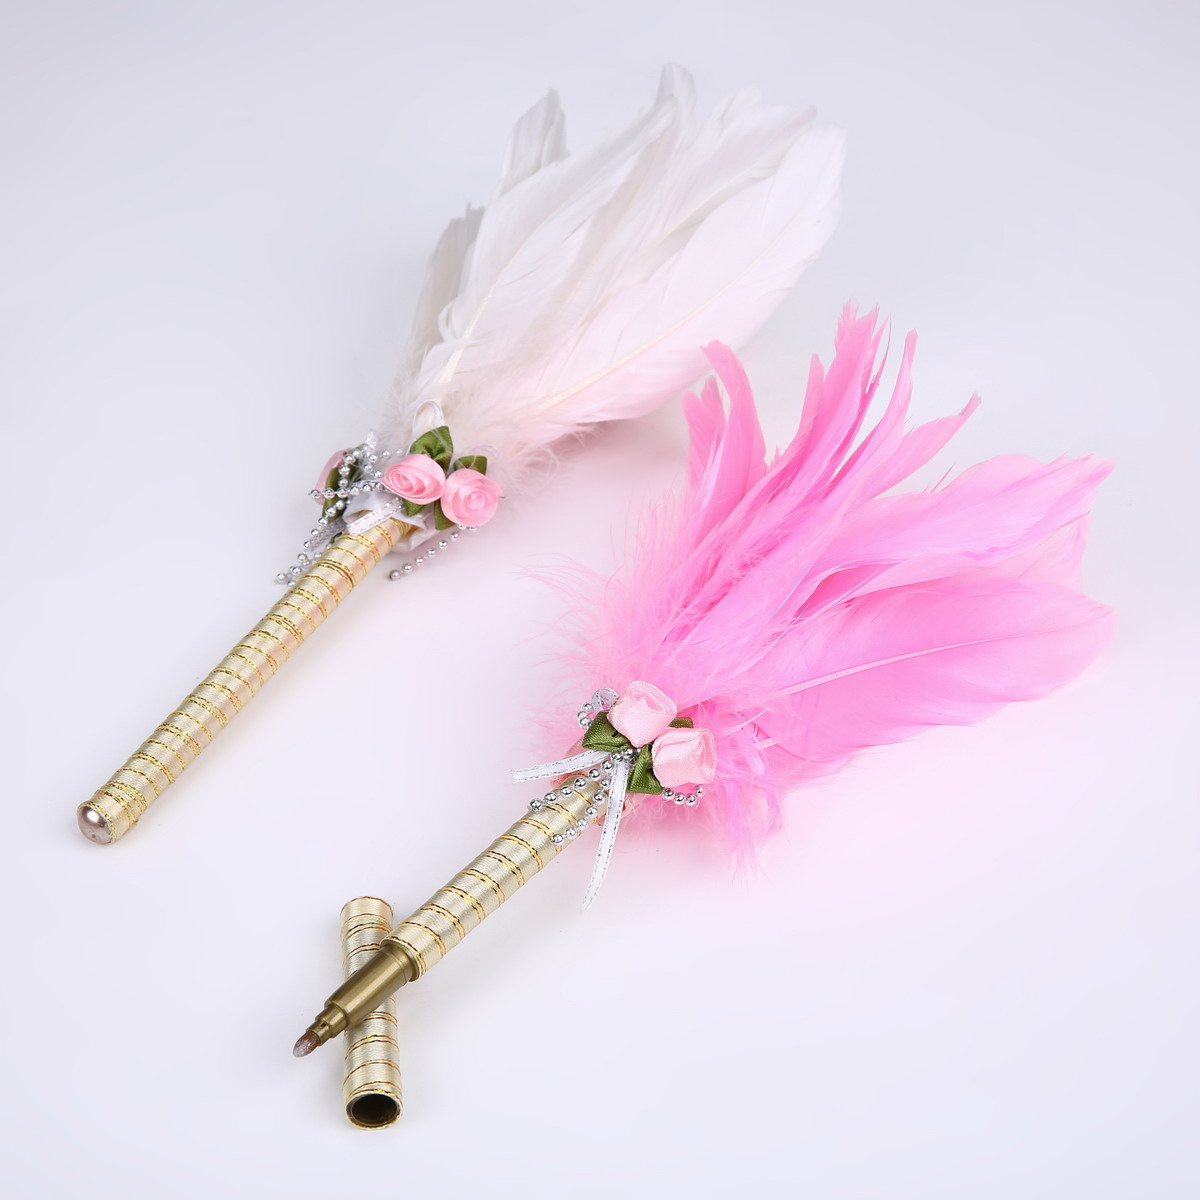 Creative pink feathers ball pen with elegance design for wedding gift /Promotion Advertisement Gift